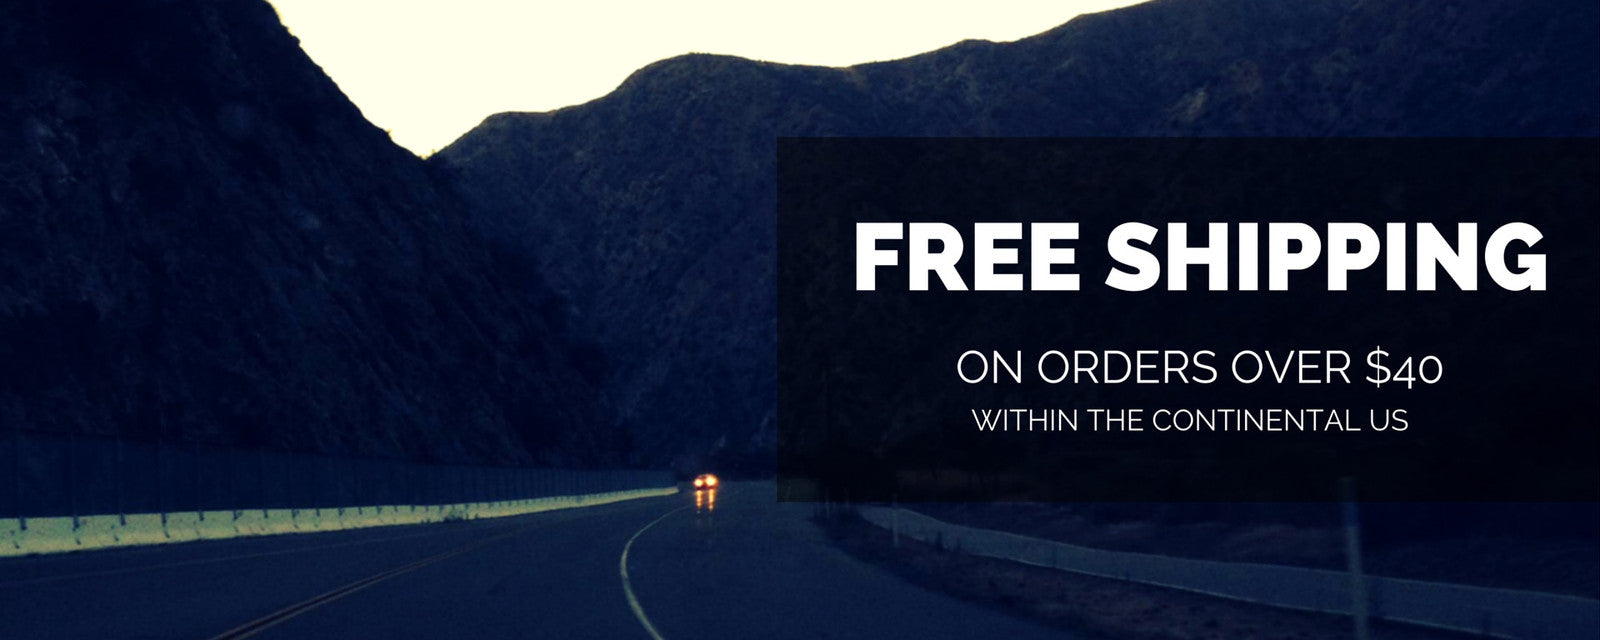 FREE SHIPPING OVER $40